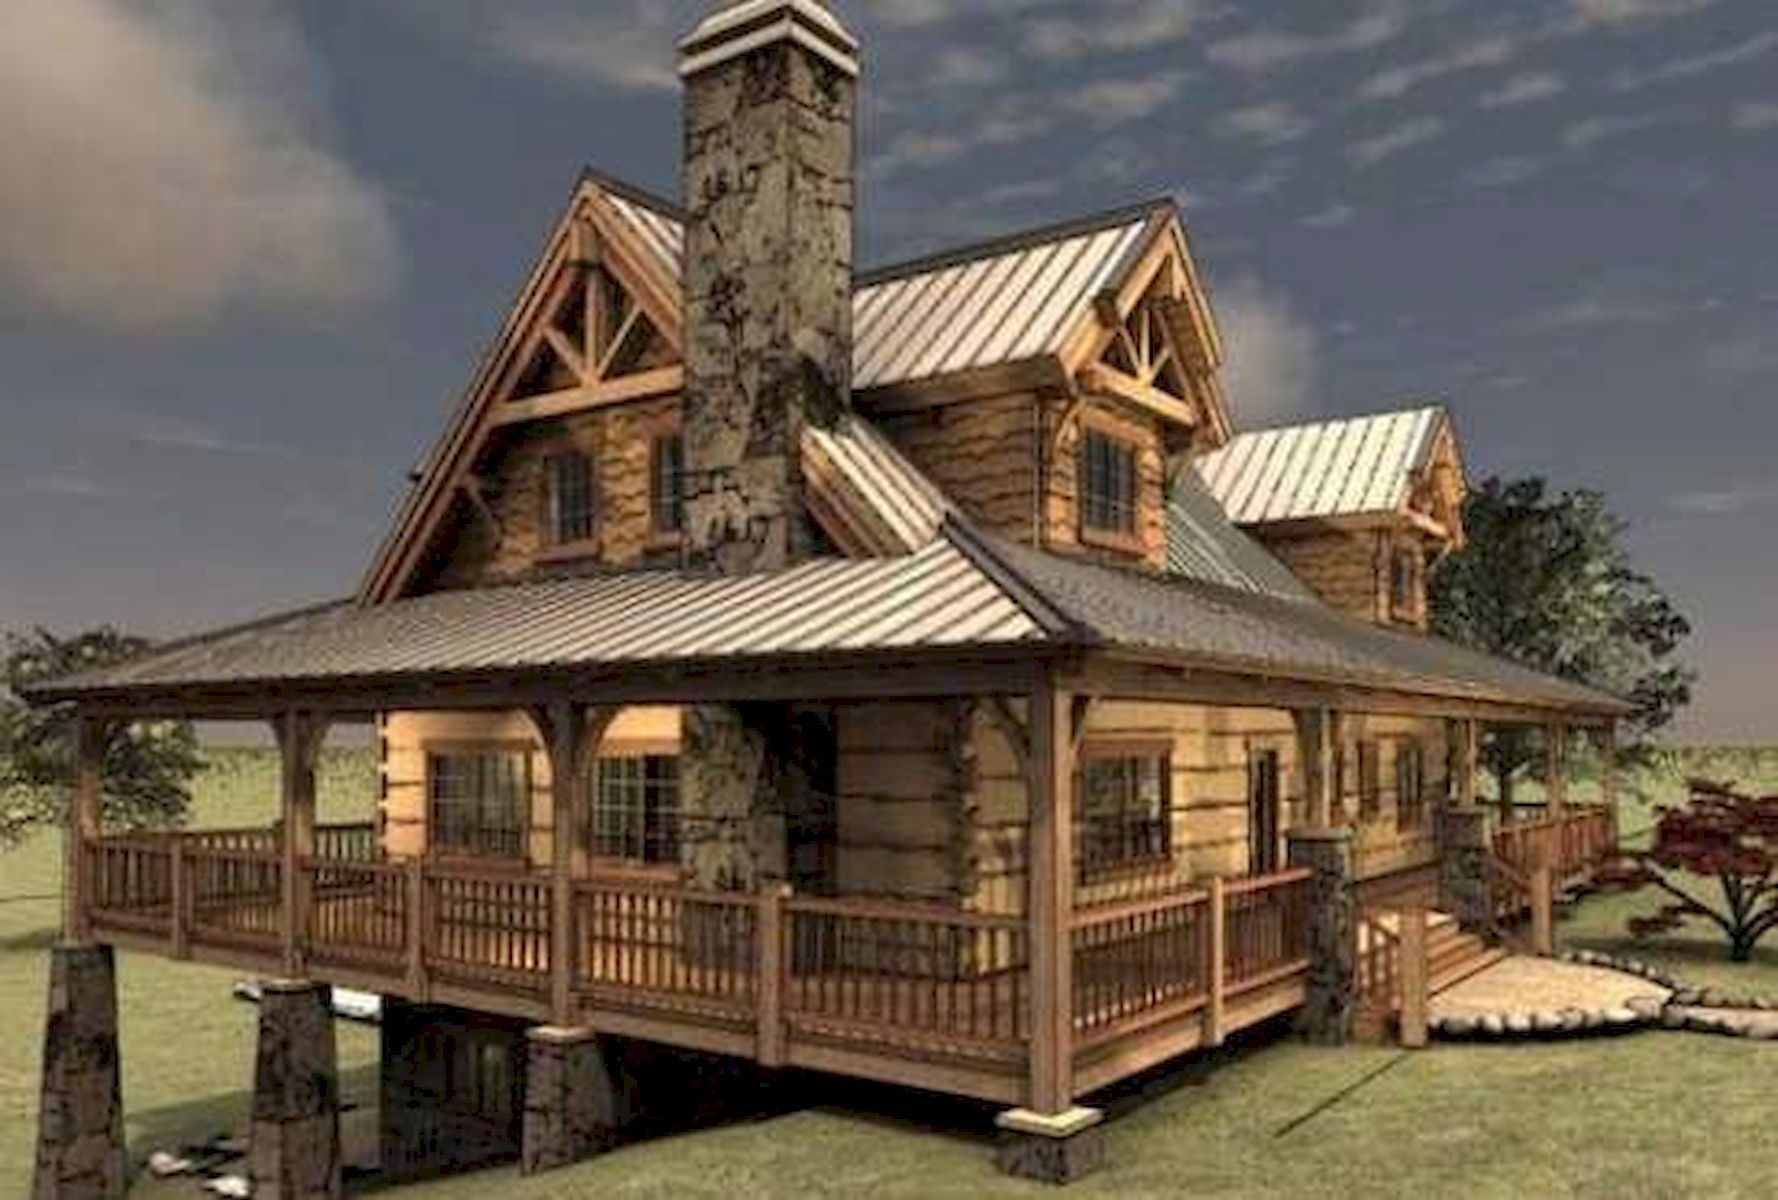 Awesome 75 Great Log Cabin Homes Plans Design Ideas Https Livingmarch Com 75 Great Log Cabin Homes Plans Design Ideas Log Homes Log Cabin Homes Cabin Homes